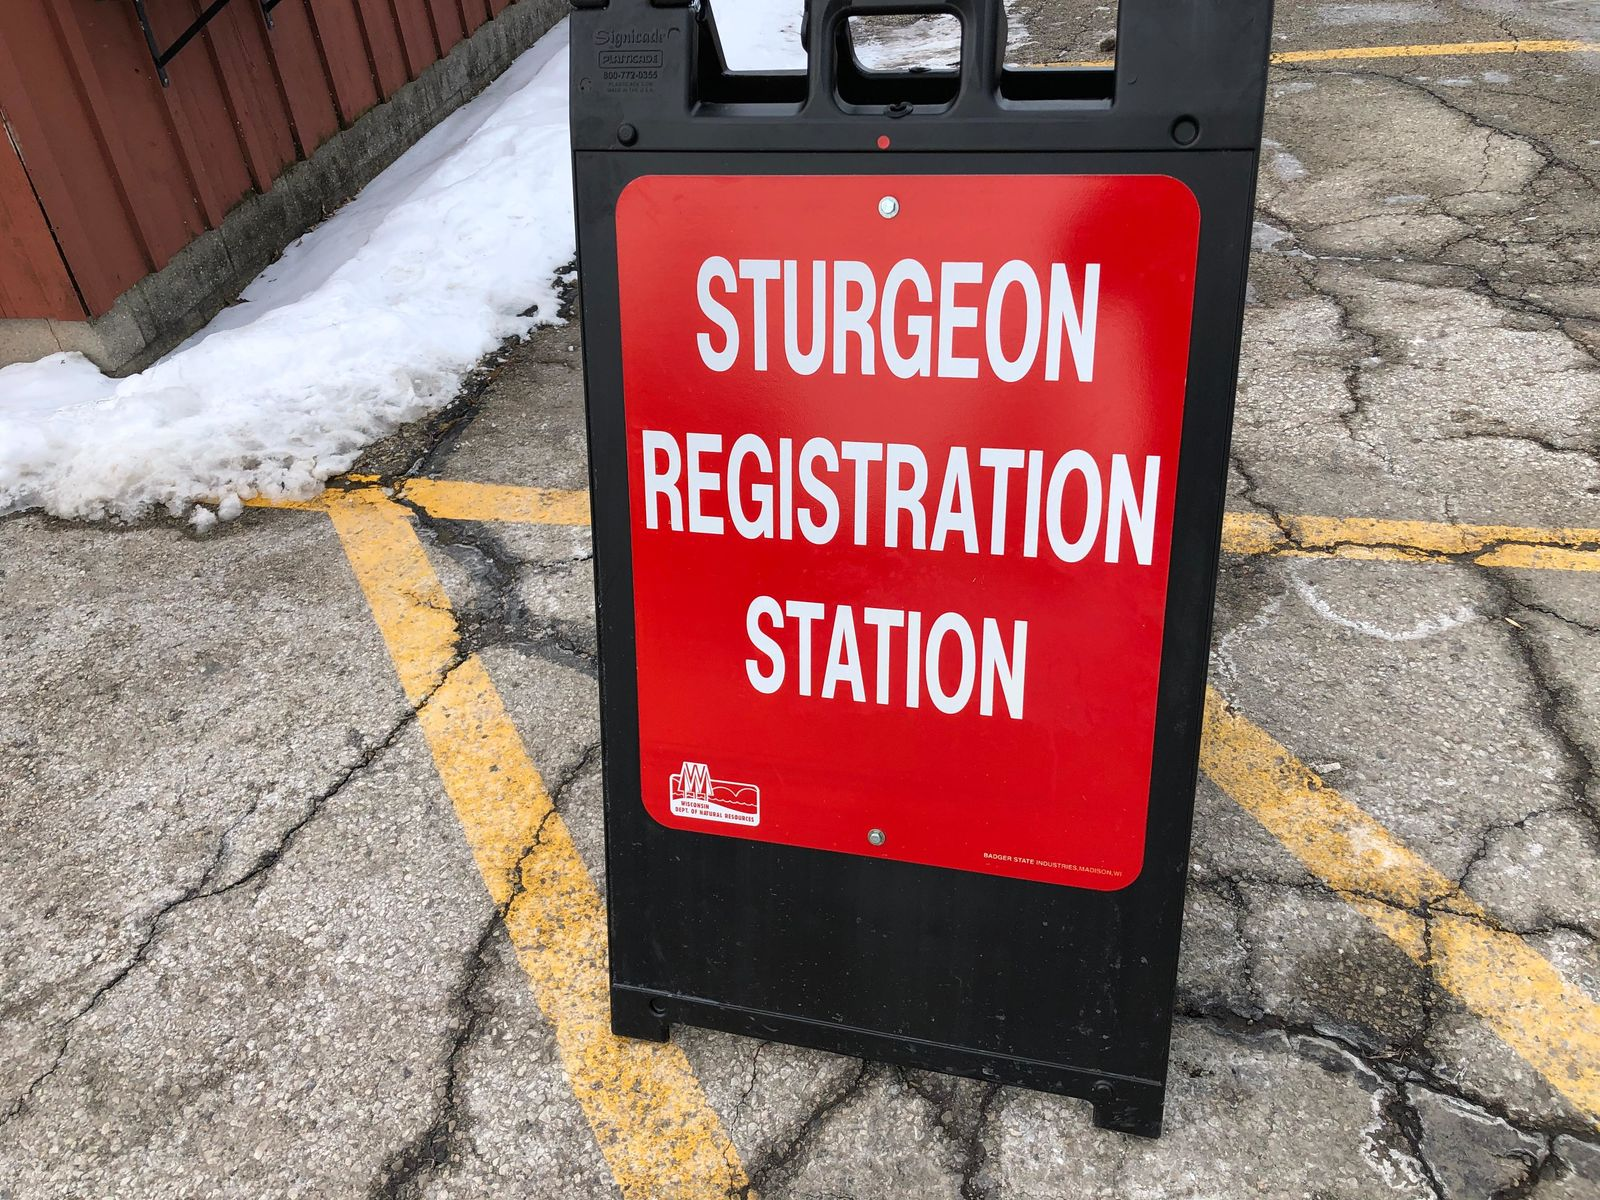 Sturgeon registration station sign at Jim and Linda's, February 17, 2020 (WLUK/Eric Peterson){ }